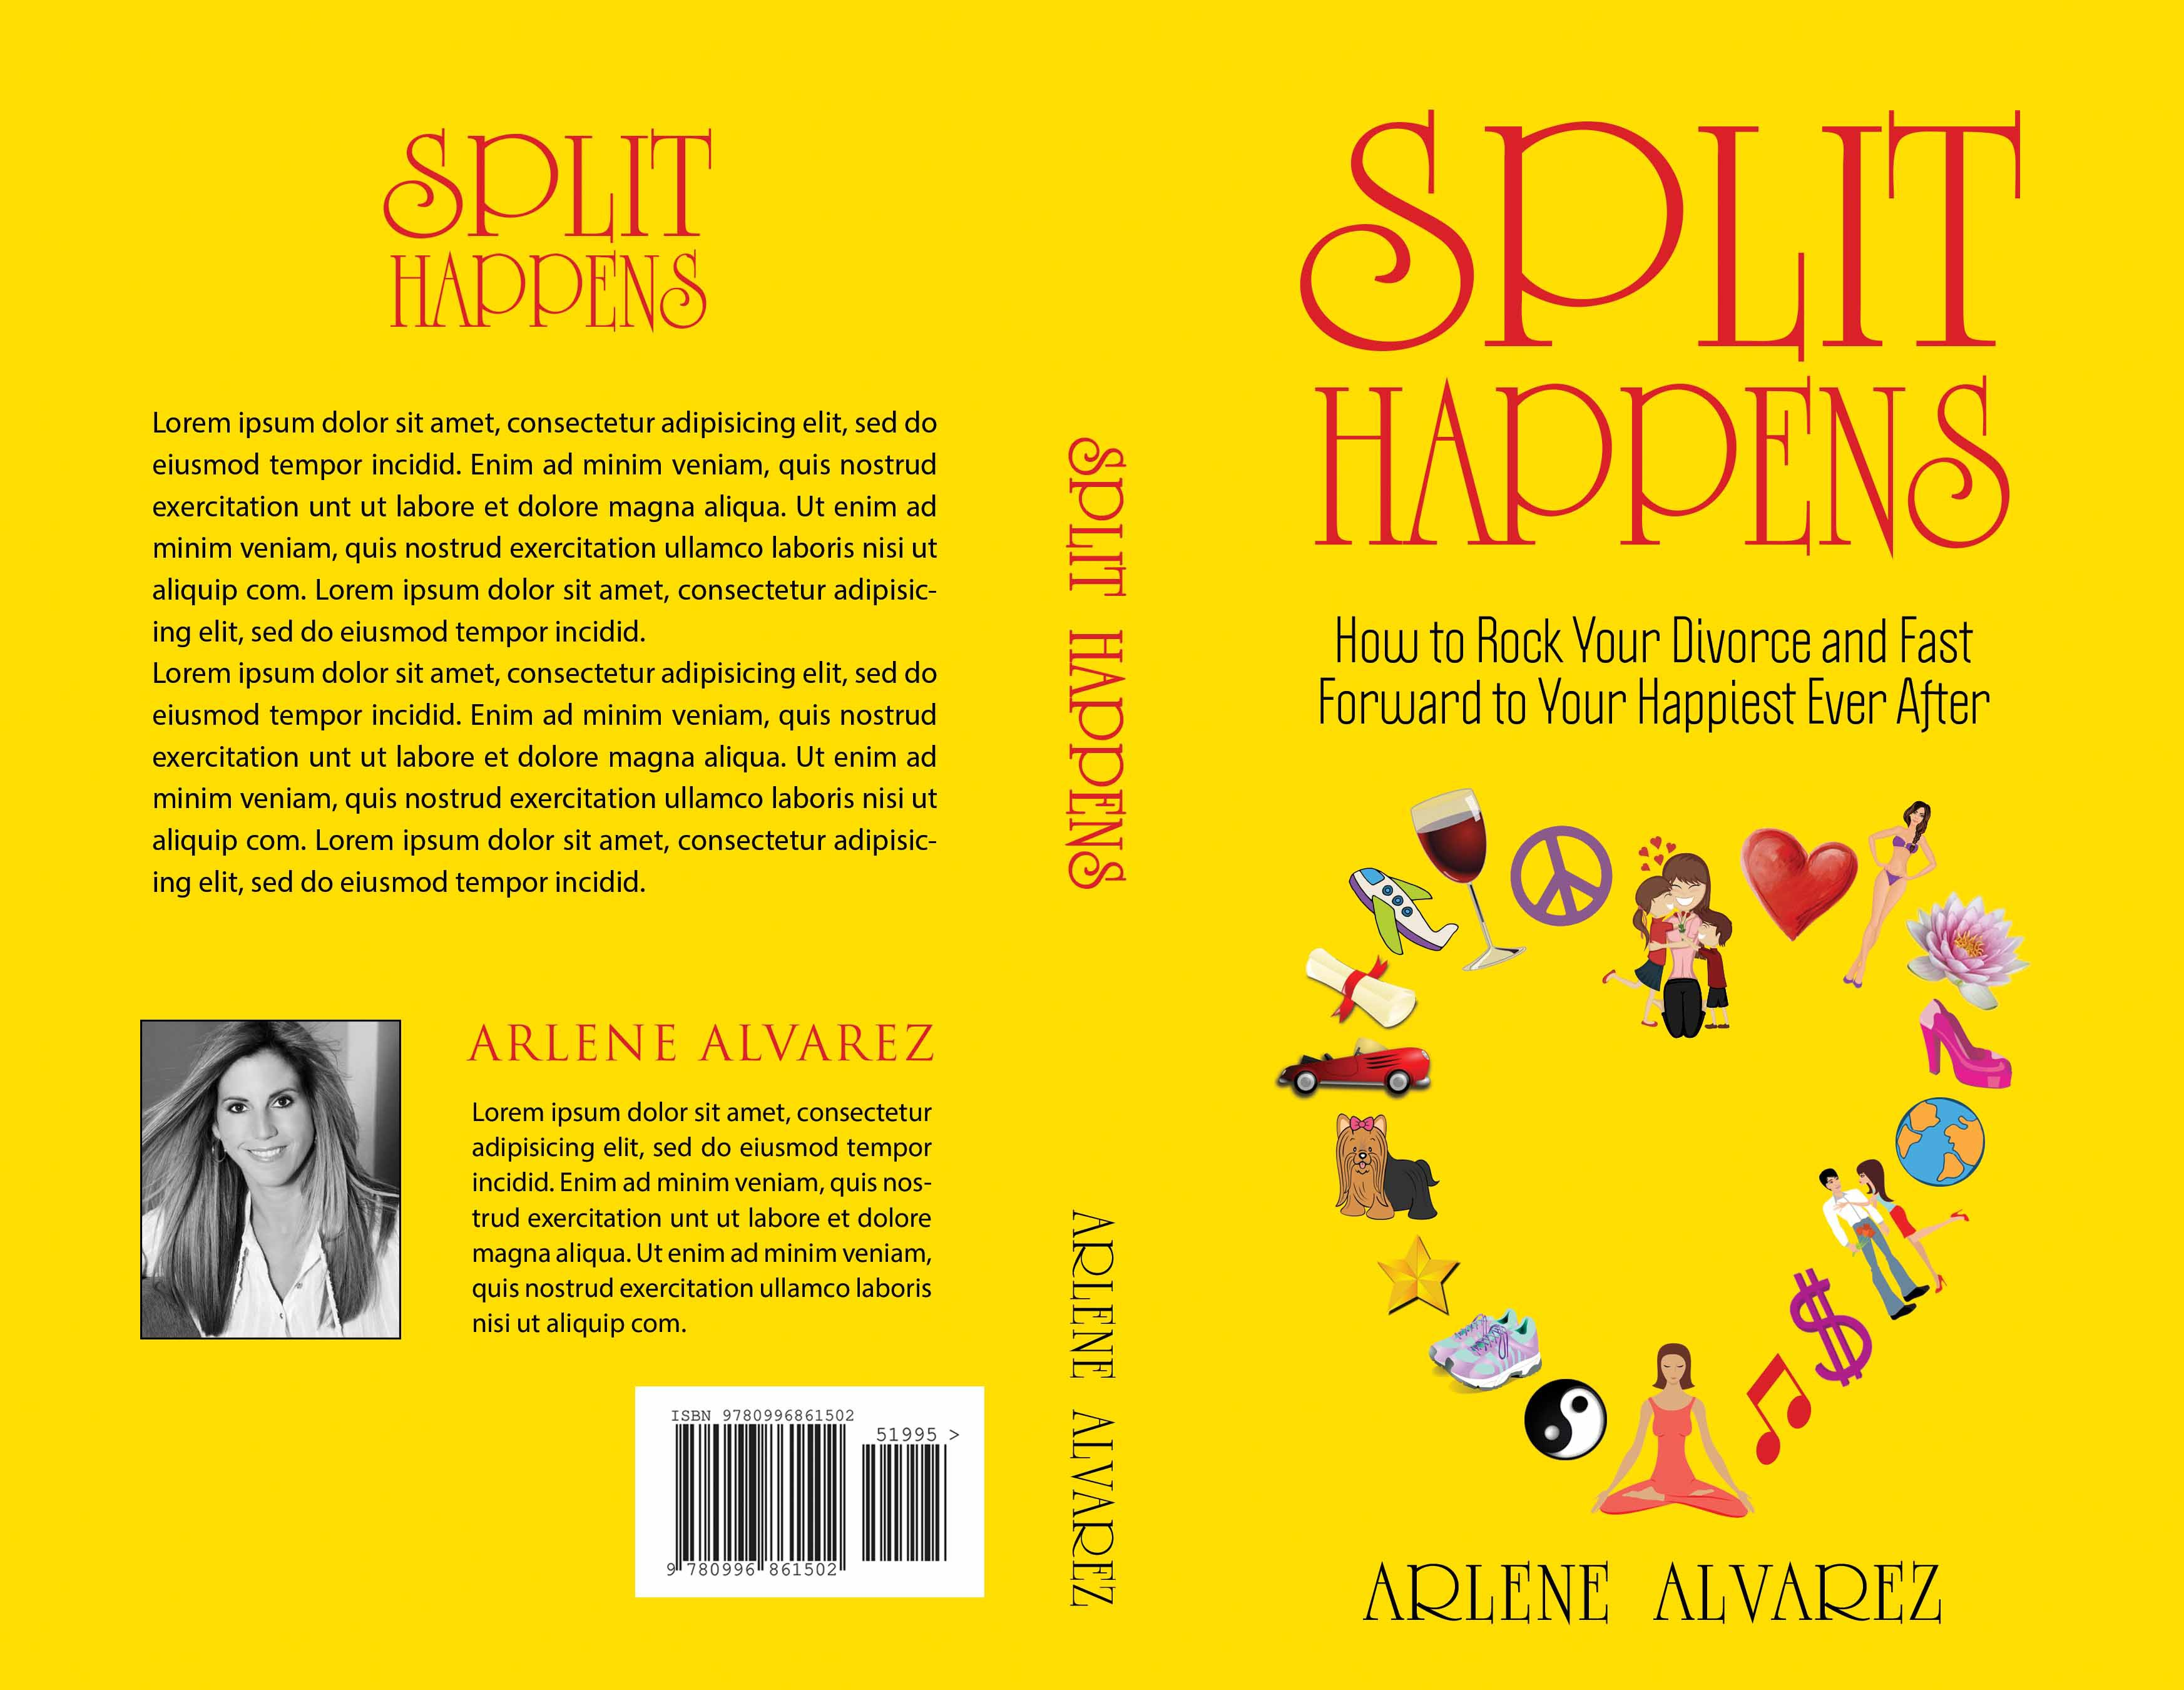 CREATE AN EYE-CATCHING, INSPIRING FRONT/BACK BOOK COVER FOR HAPPY DIVORCE BOOK